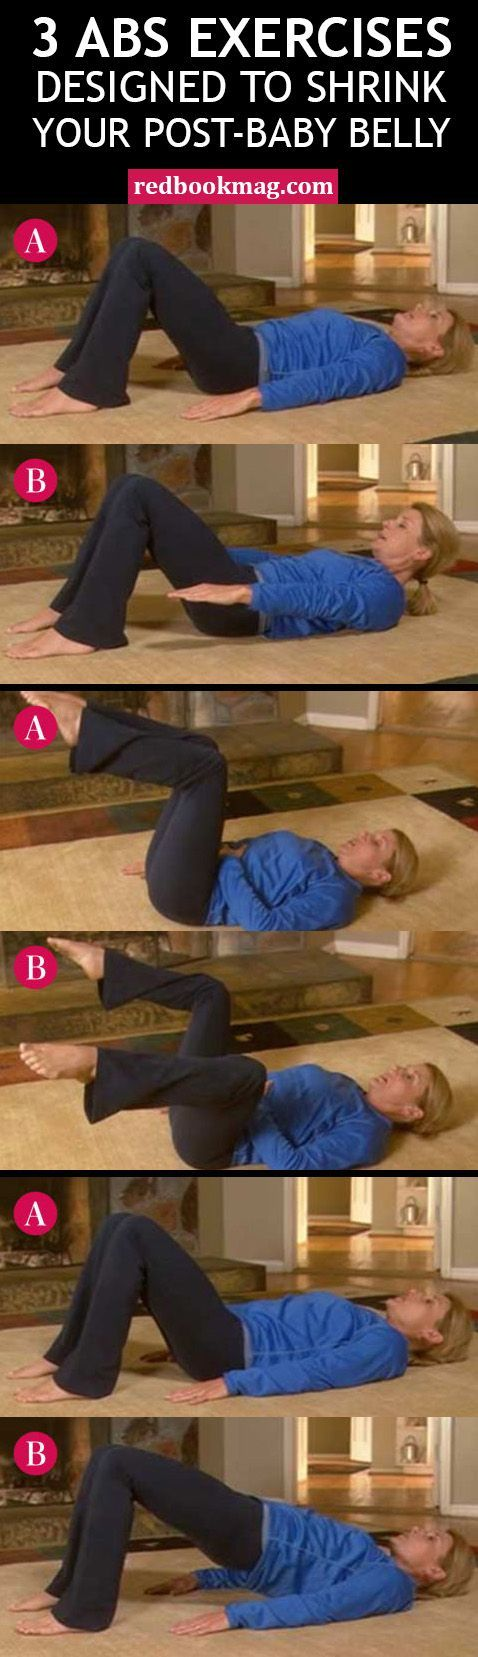 POST-BABY BELLY WORKOUT: If you're having a touch time getting rid of your post-baby belly, these exercises can help! Fitness expert and certified postnatal exercise specialist, Erin Denton, put together this routine to get strong and flat abs. Do 10 reps of each move every day for a week, and then 20 reps for three to four weeks (just be sure to get the okay from your doctor first). Click through for the full workout and instructions!